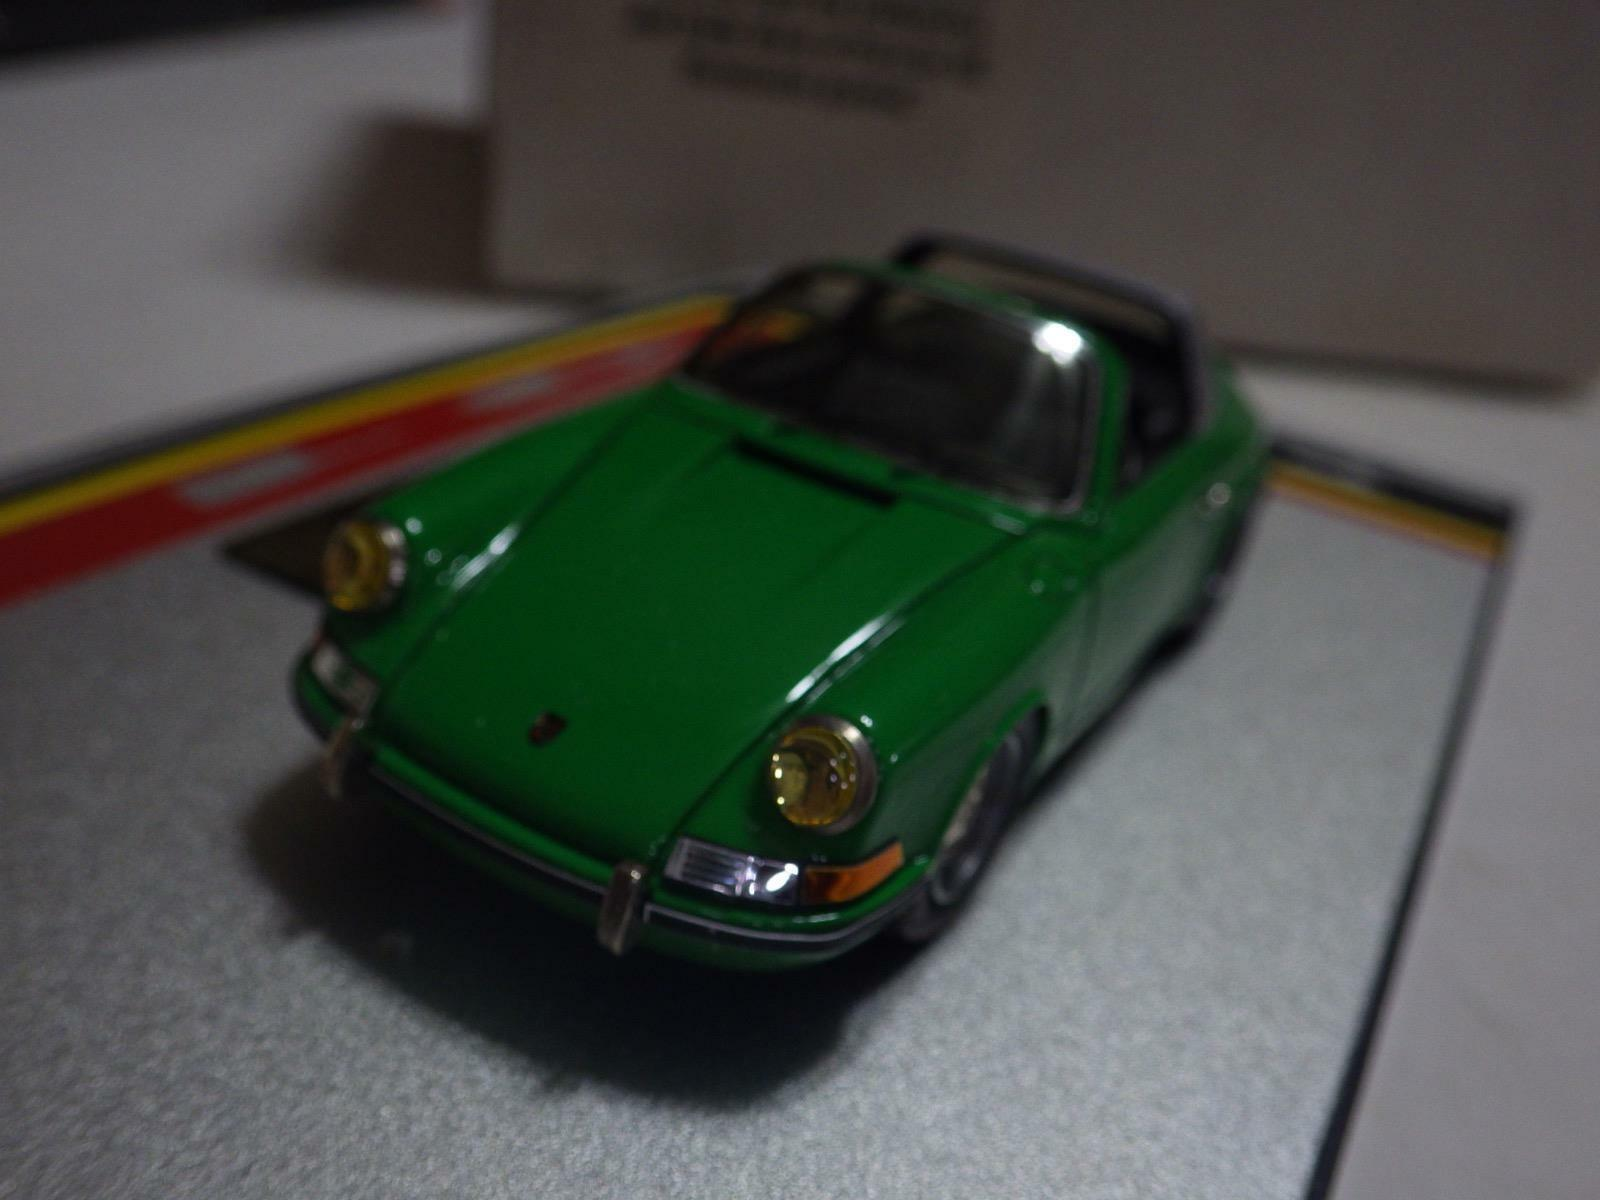 Heco Miniatures Du Chateau (France) Green Porsche 911 Carrera 2 Targa 1991 1:43